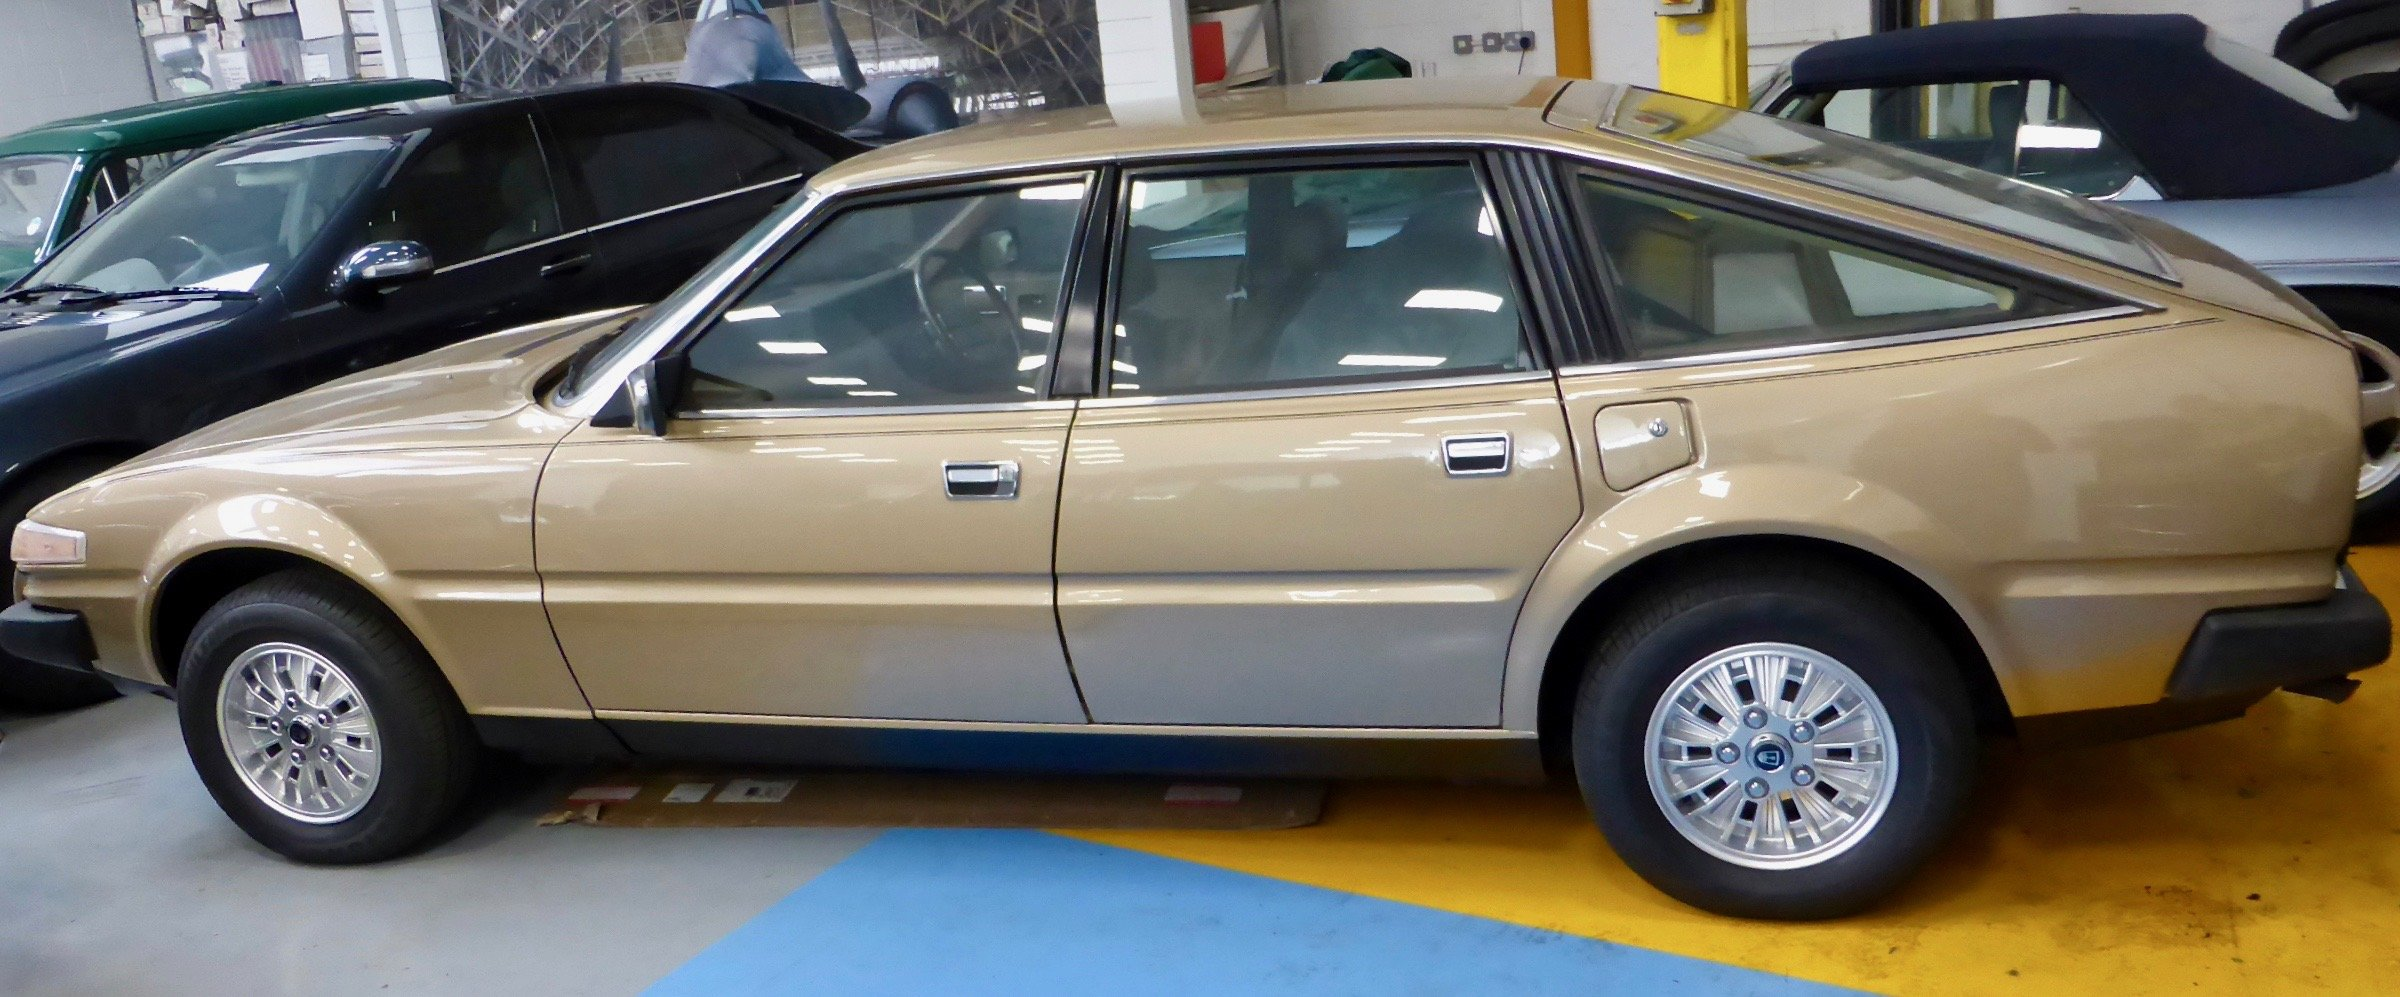 1980 Rover SD1 3500 Hatchback  For Sale (picture 1 of 4)